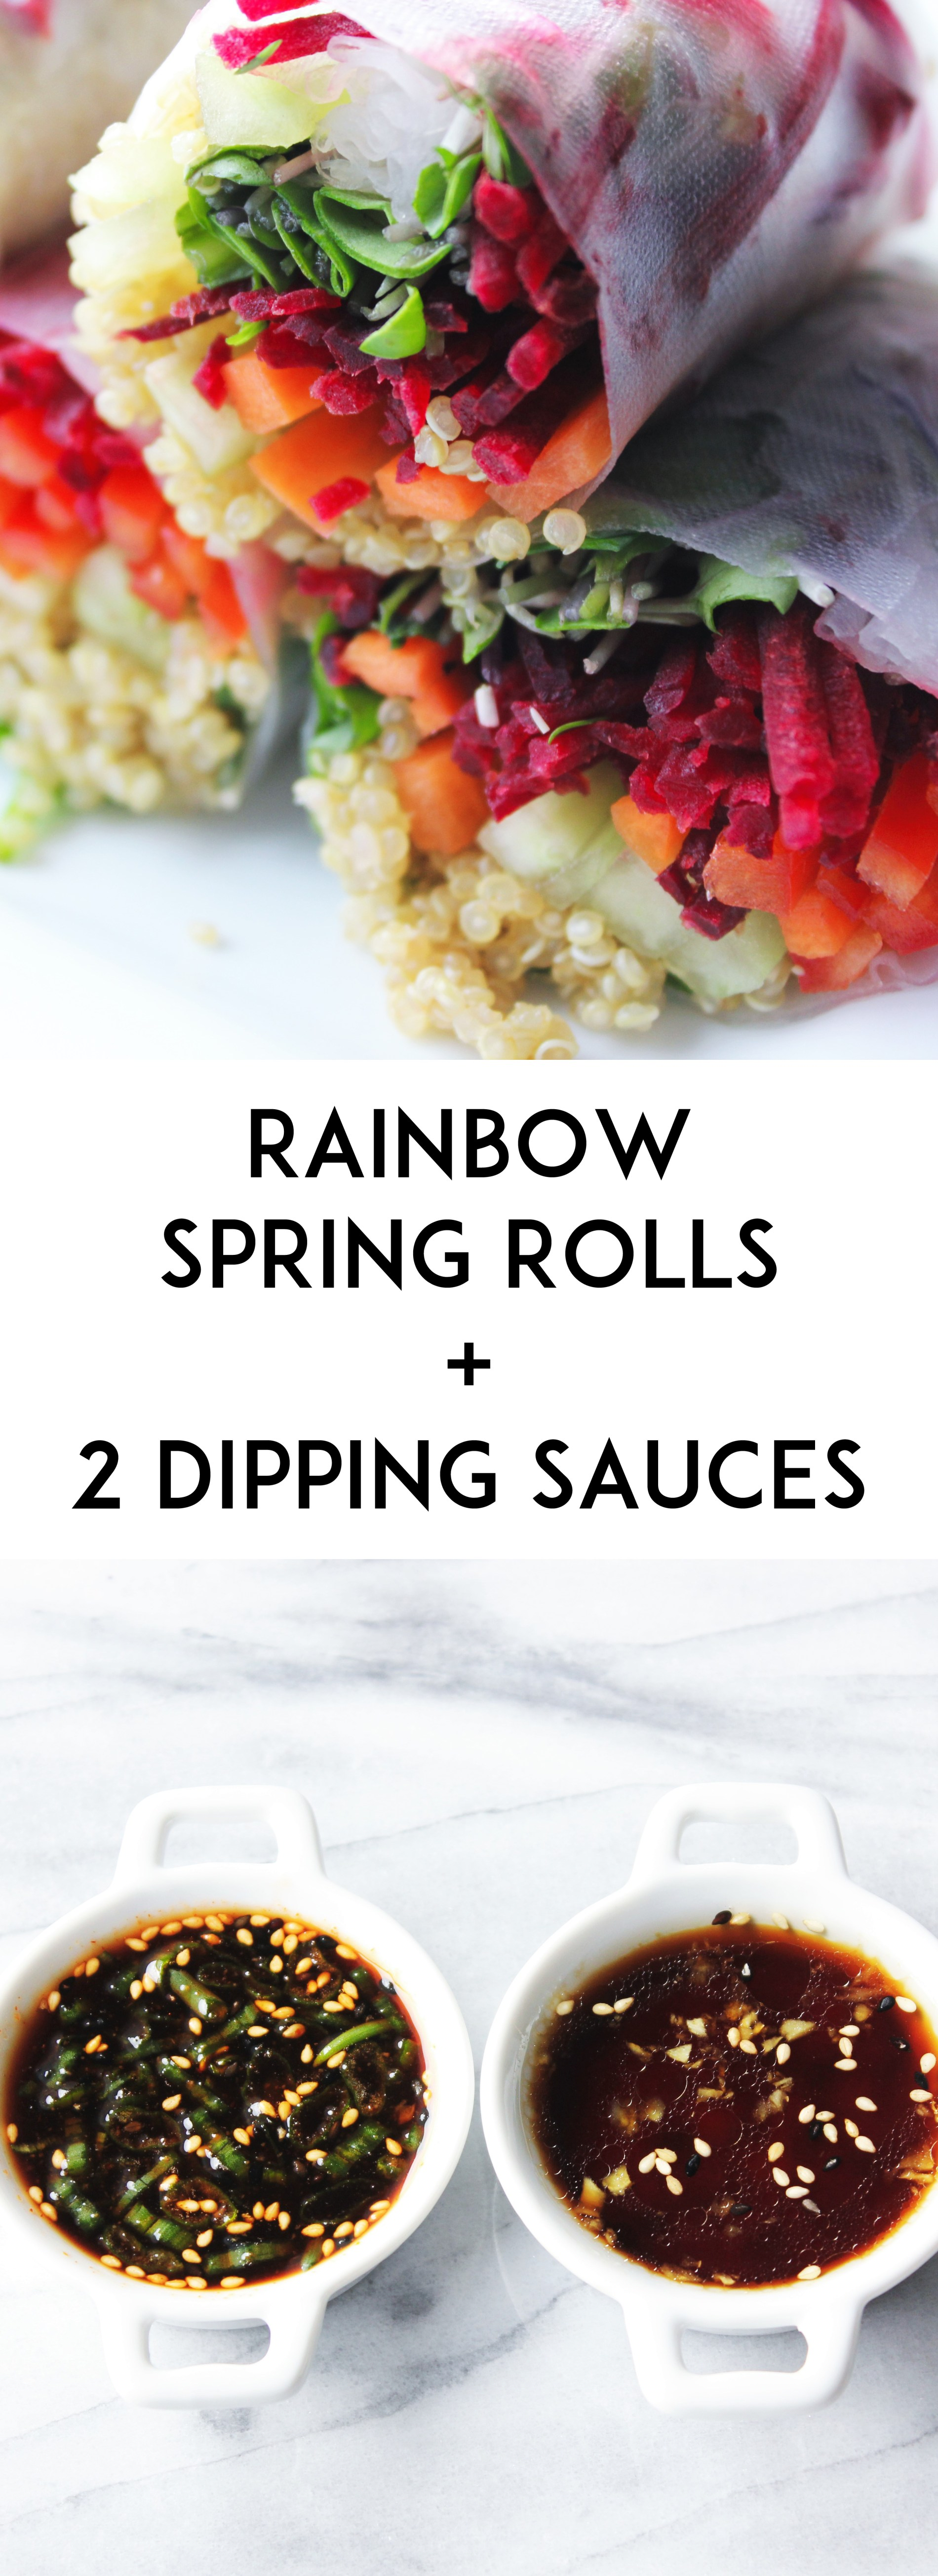 Rainbow Spring Rolls 2 Dipping Sauces